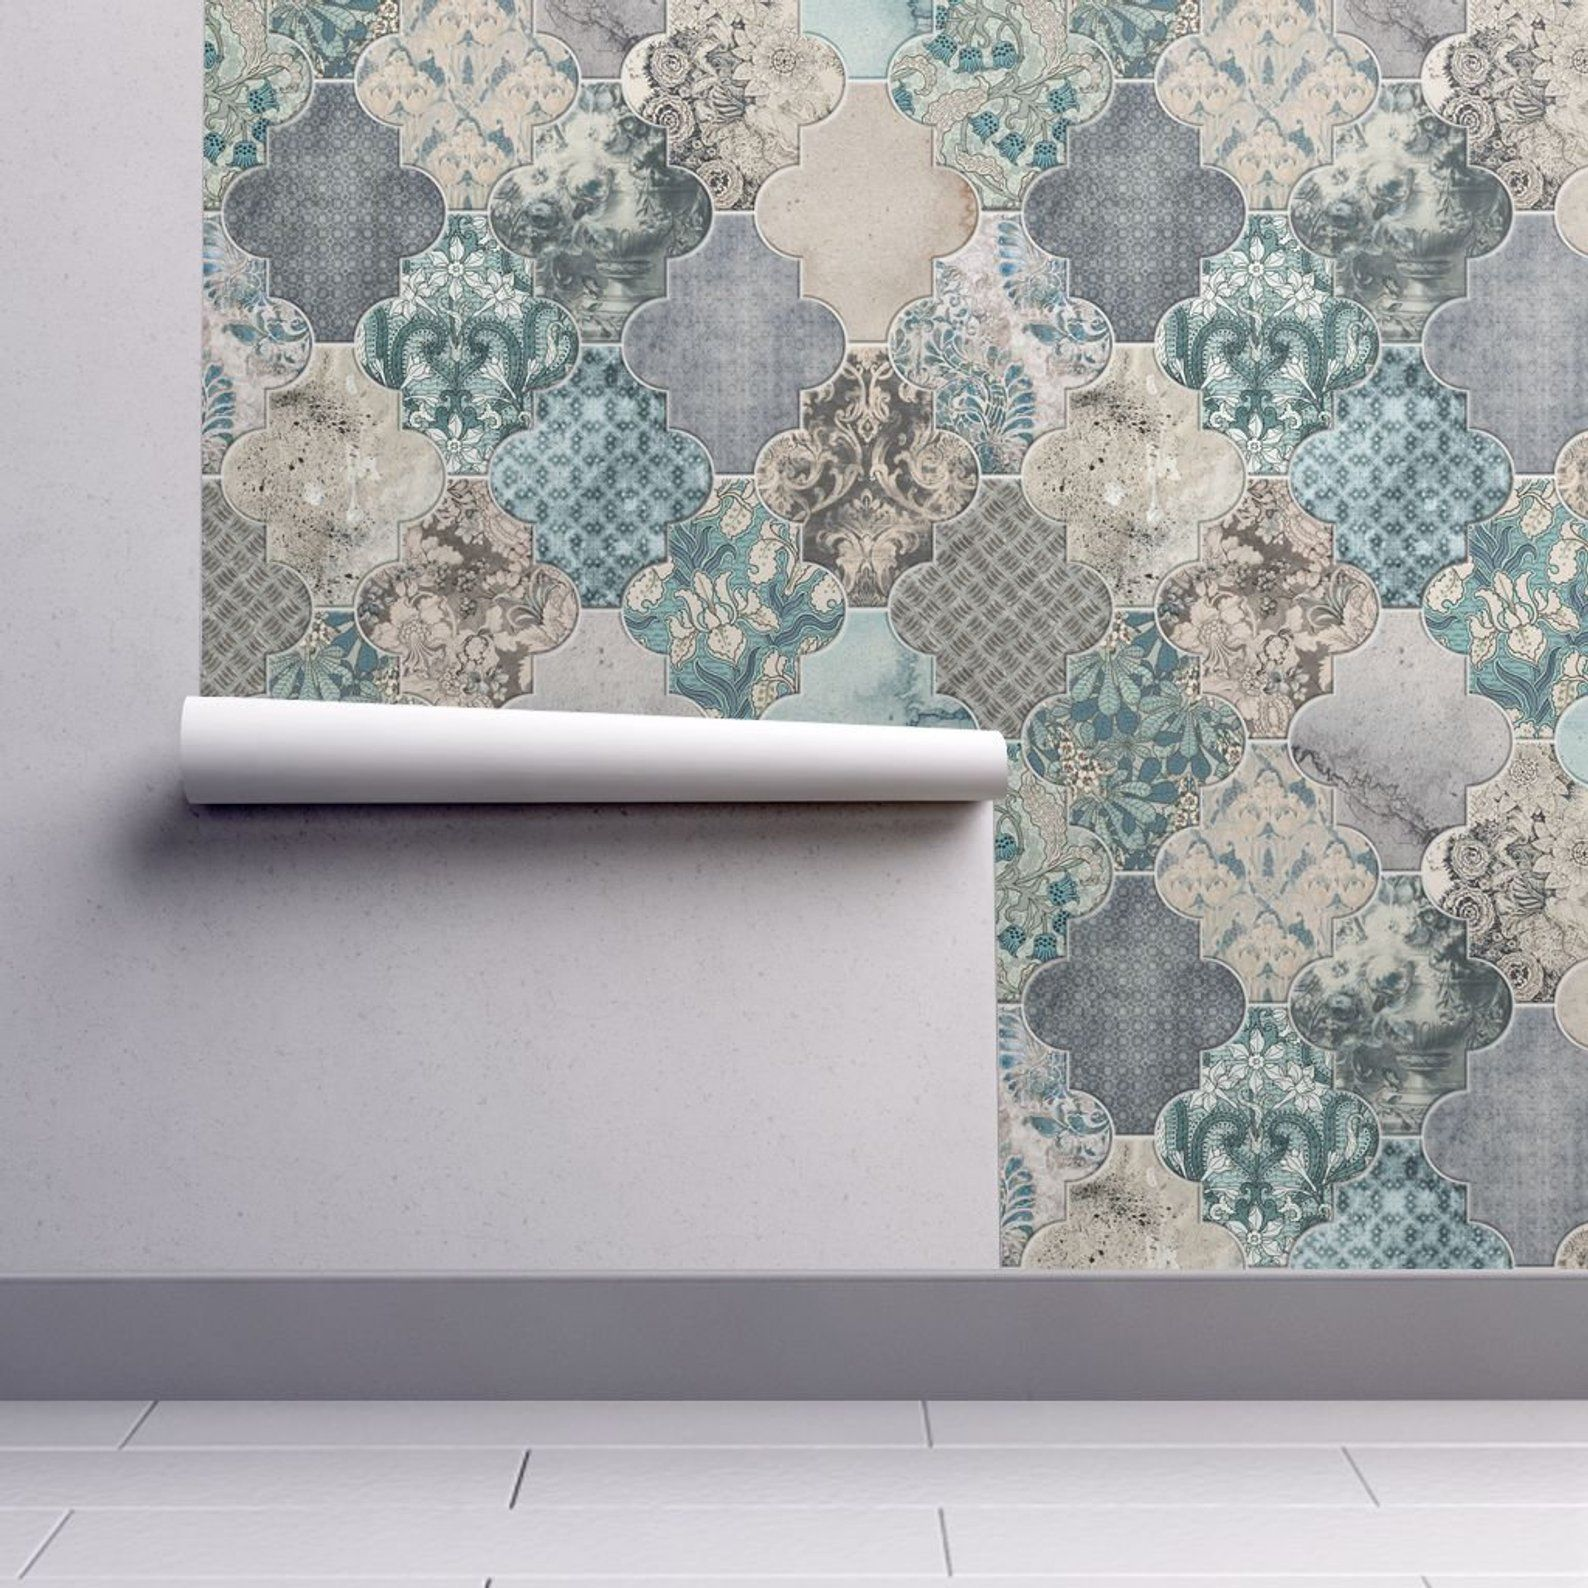 Moroccan Tiles Wallpaper Duck Egg Blue REMOVABLE Peel and